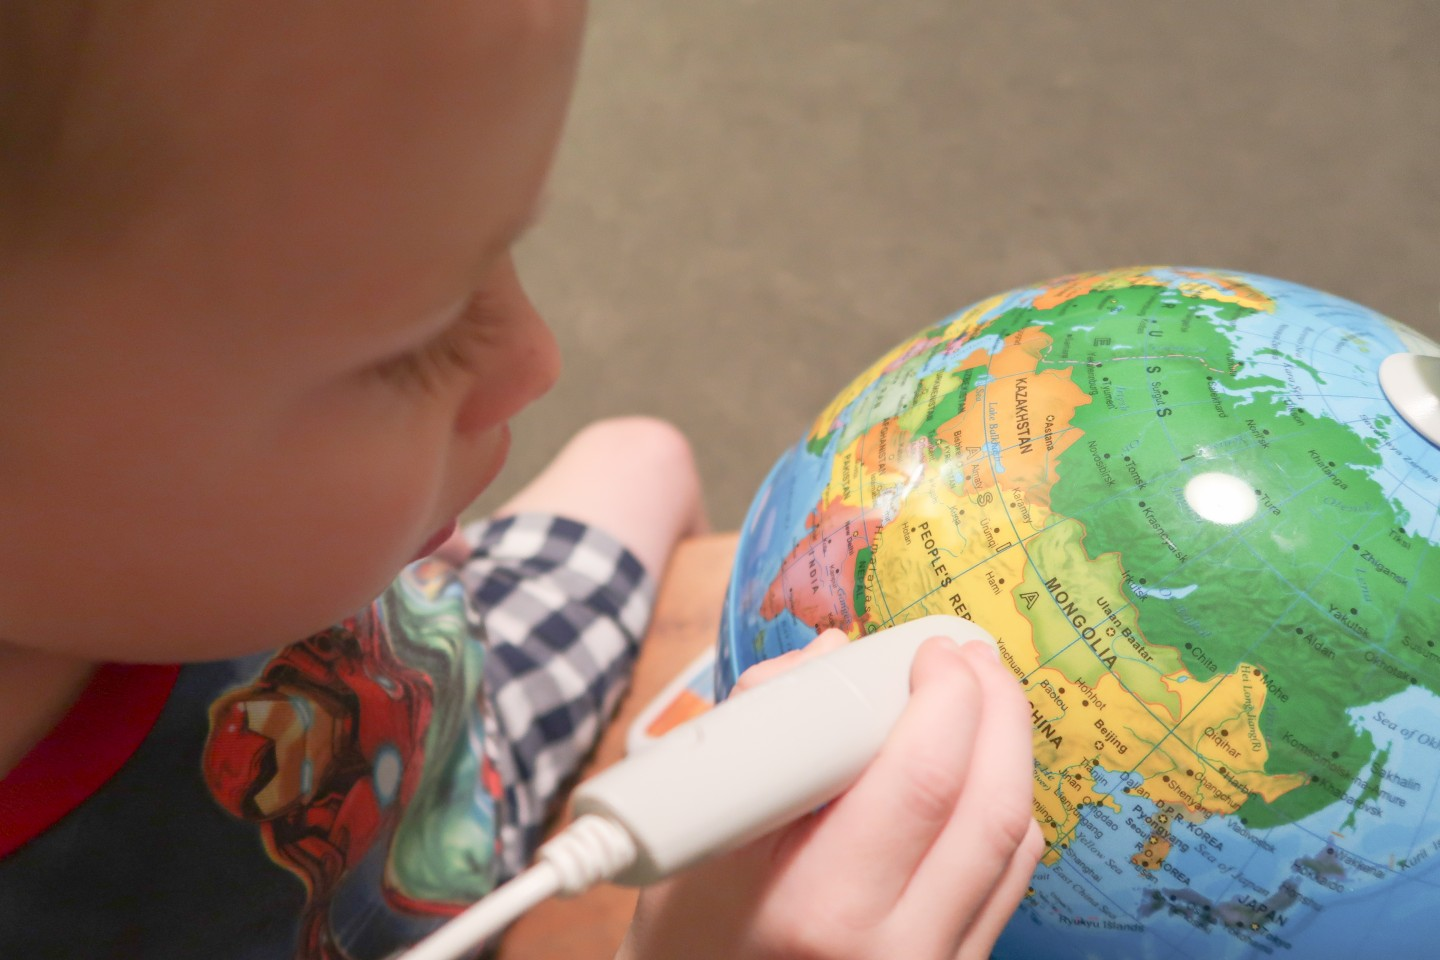 review oregon scientific smart globe adventure augmented reality explore atlas map present gift idea